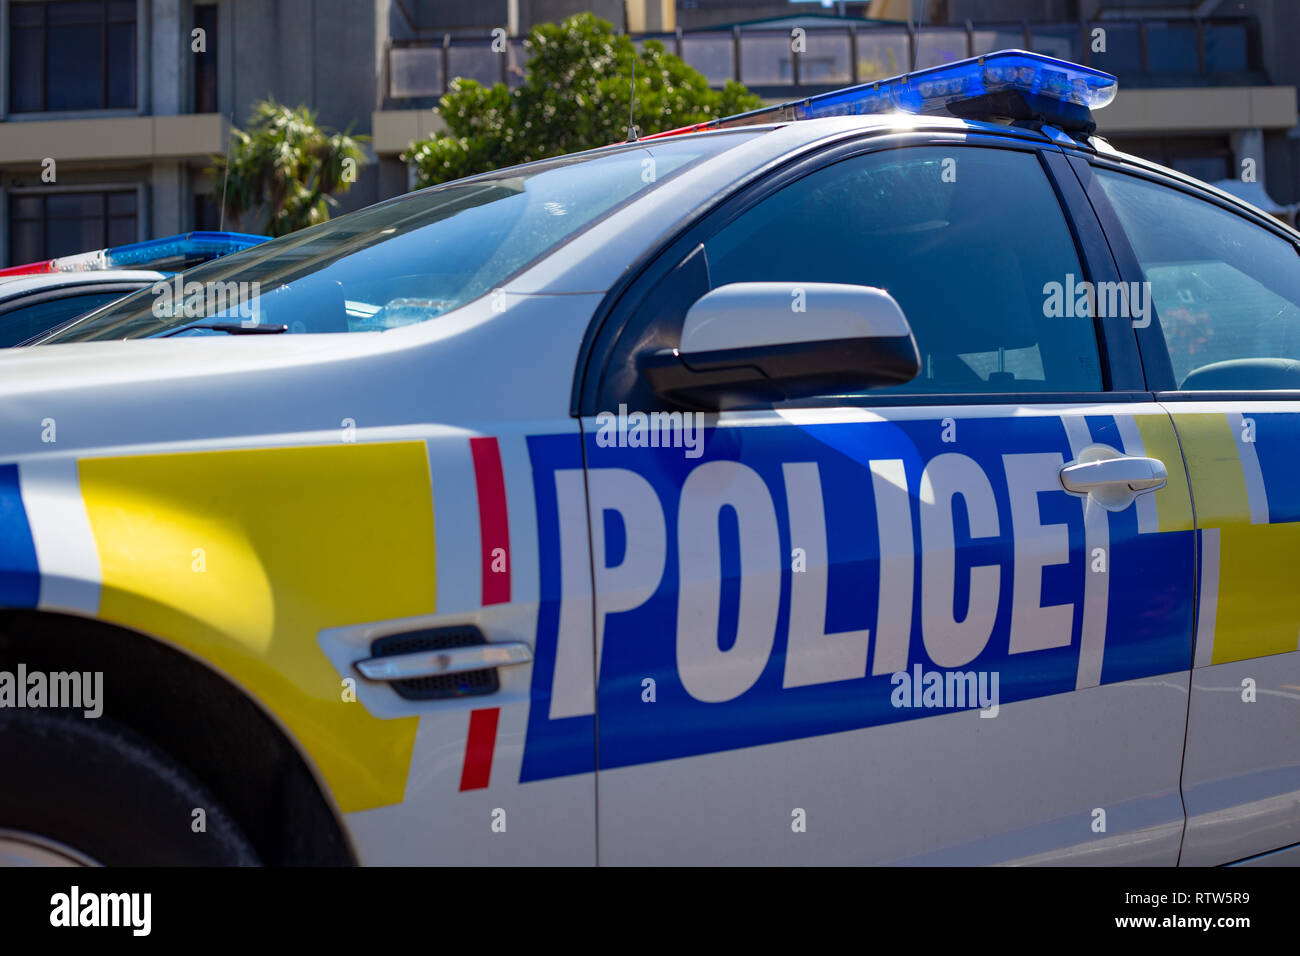 Christchurch, New Zealand, March 2 2019: Parked New Zealand police cars with their distinct branding - Stock Image